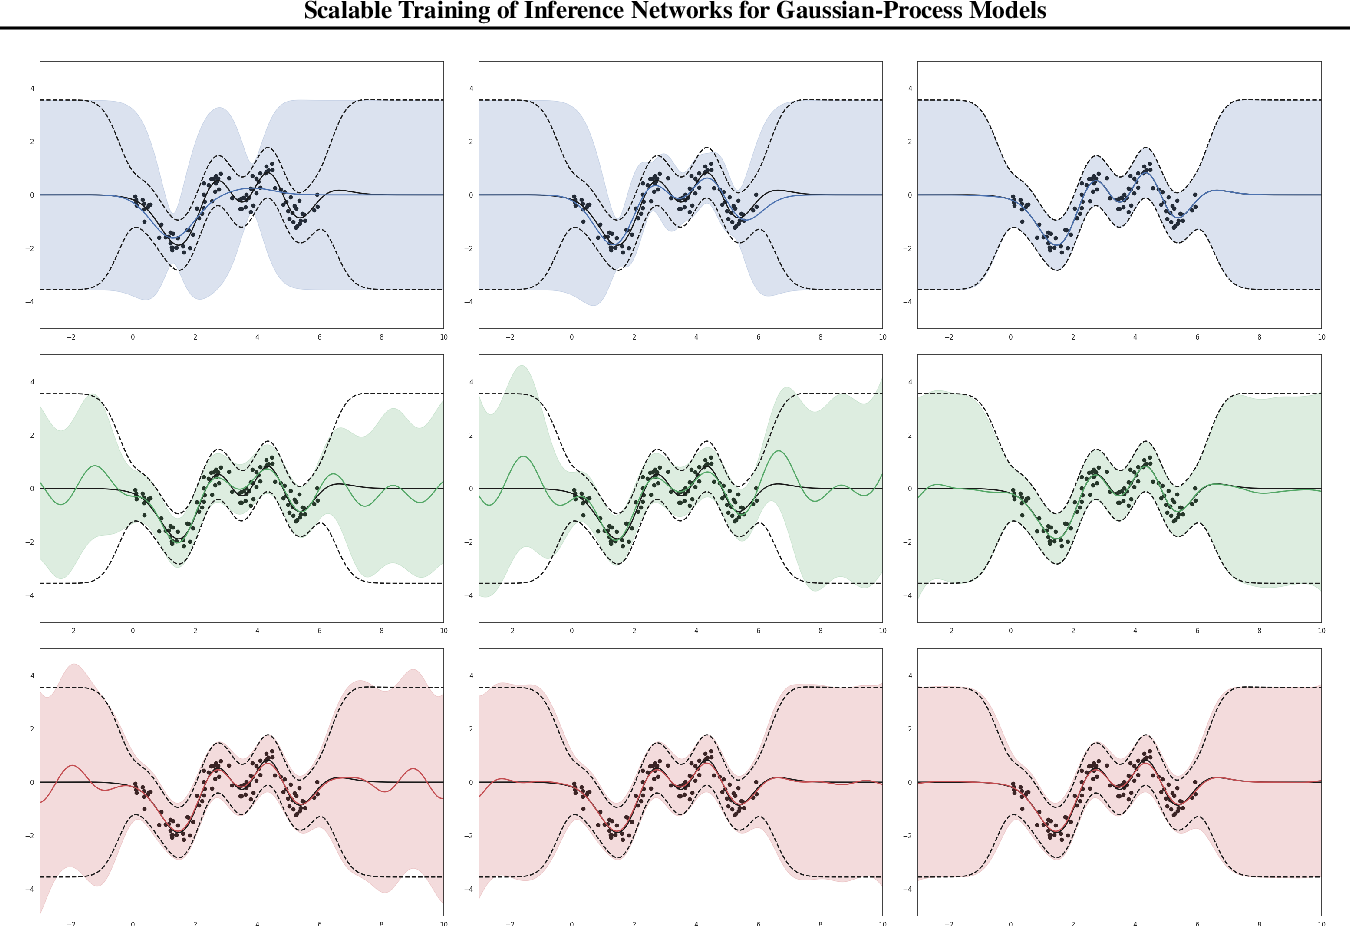 Figure 2 for Scalable Training of Inference Networks for Gaussian-Process Models